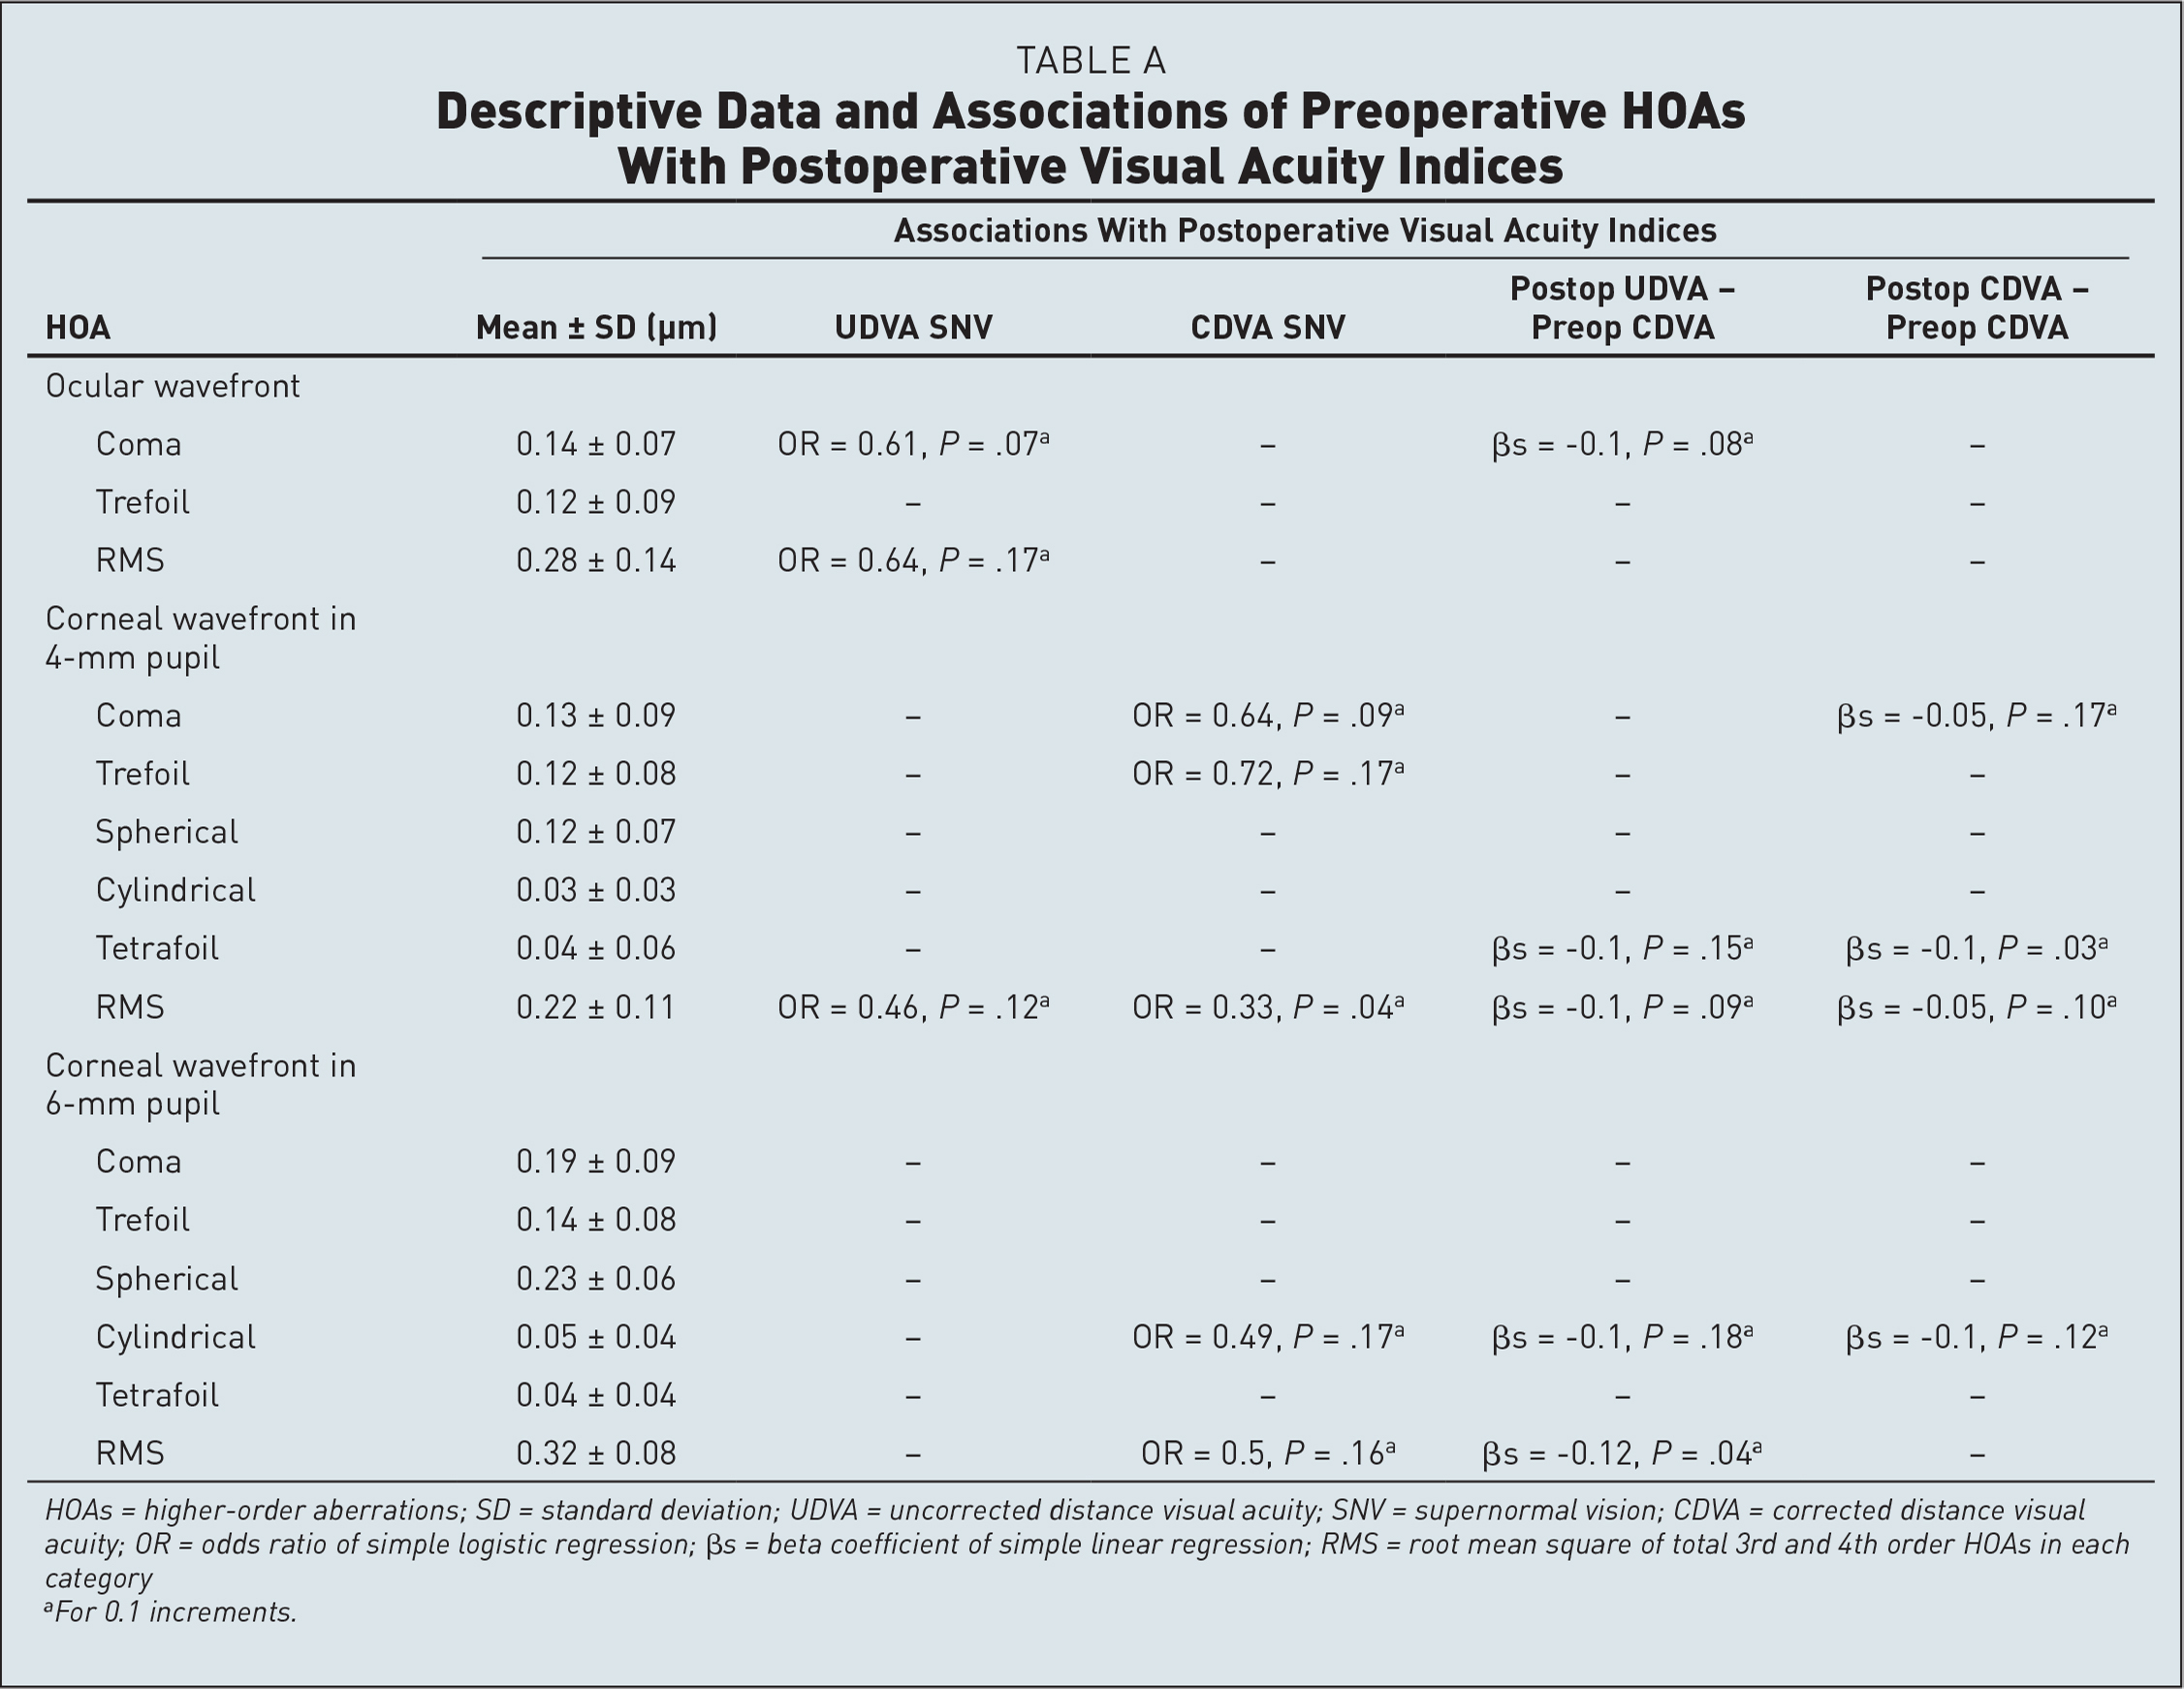 Descriptive Data and Associations of Preoperative HOAs With Postoperative Visual Acuity Indices